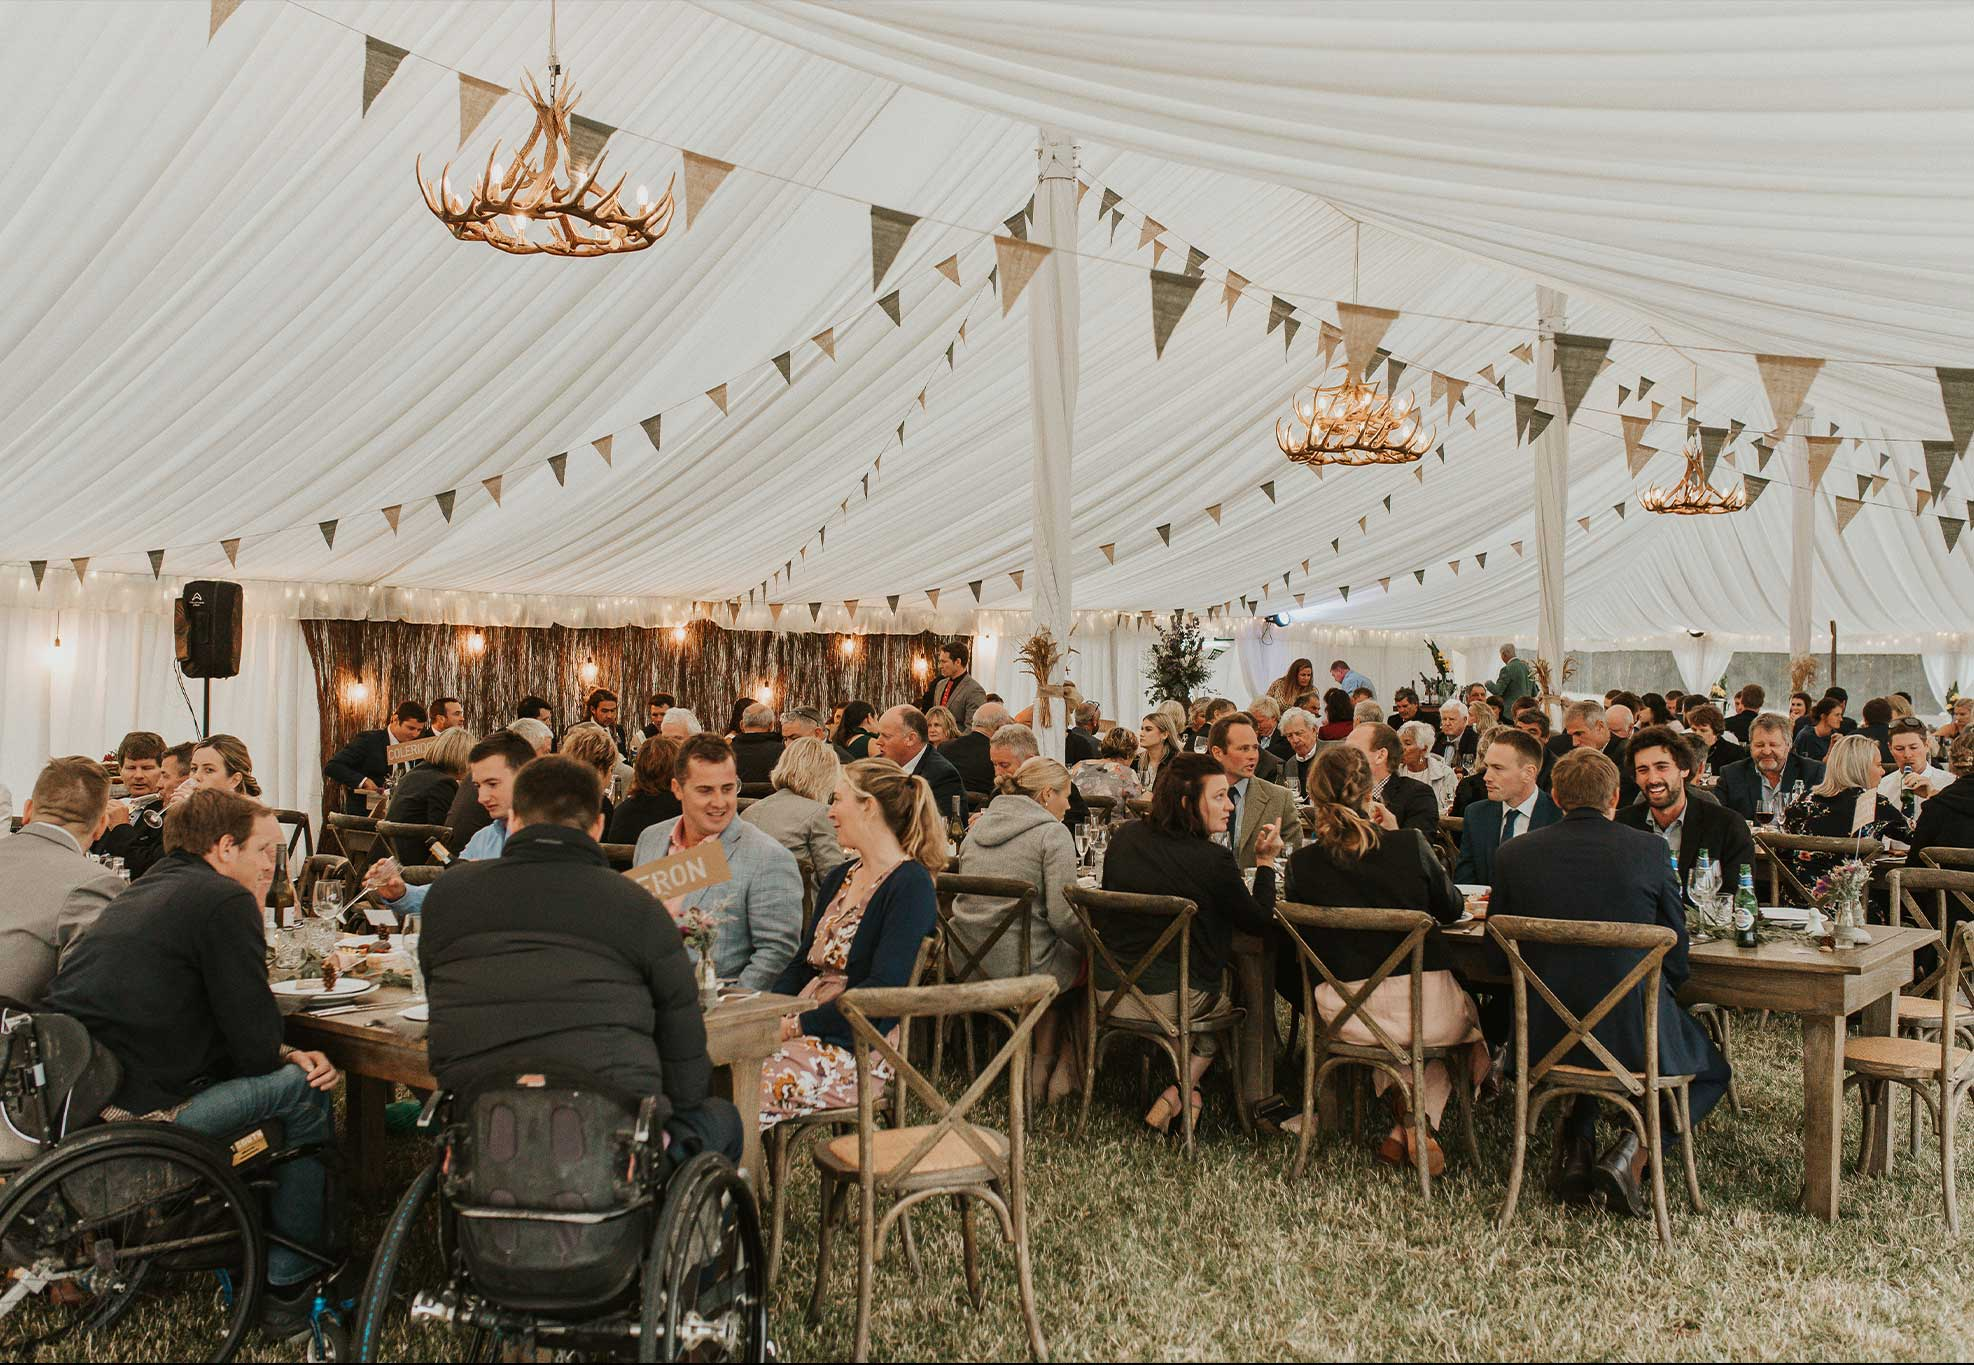 silk-estate-marquee-weddings-and-events-styling-and-hire-lighting-chandelier-6